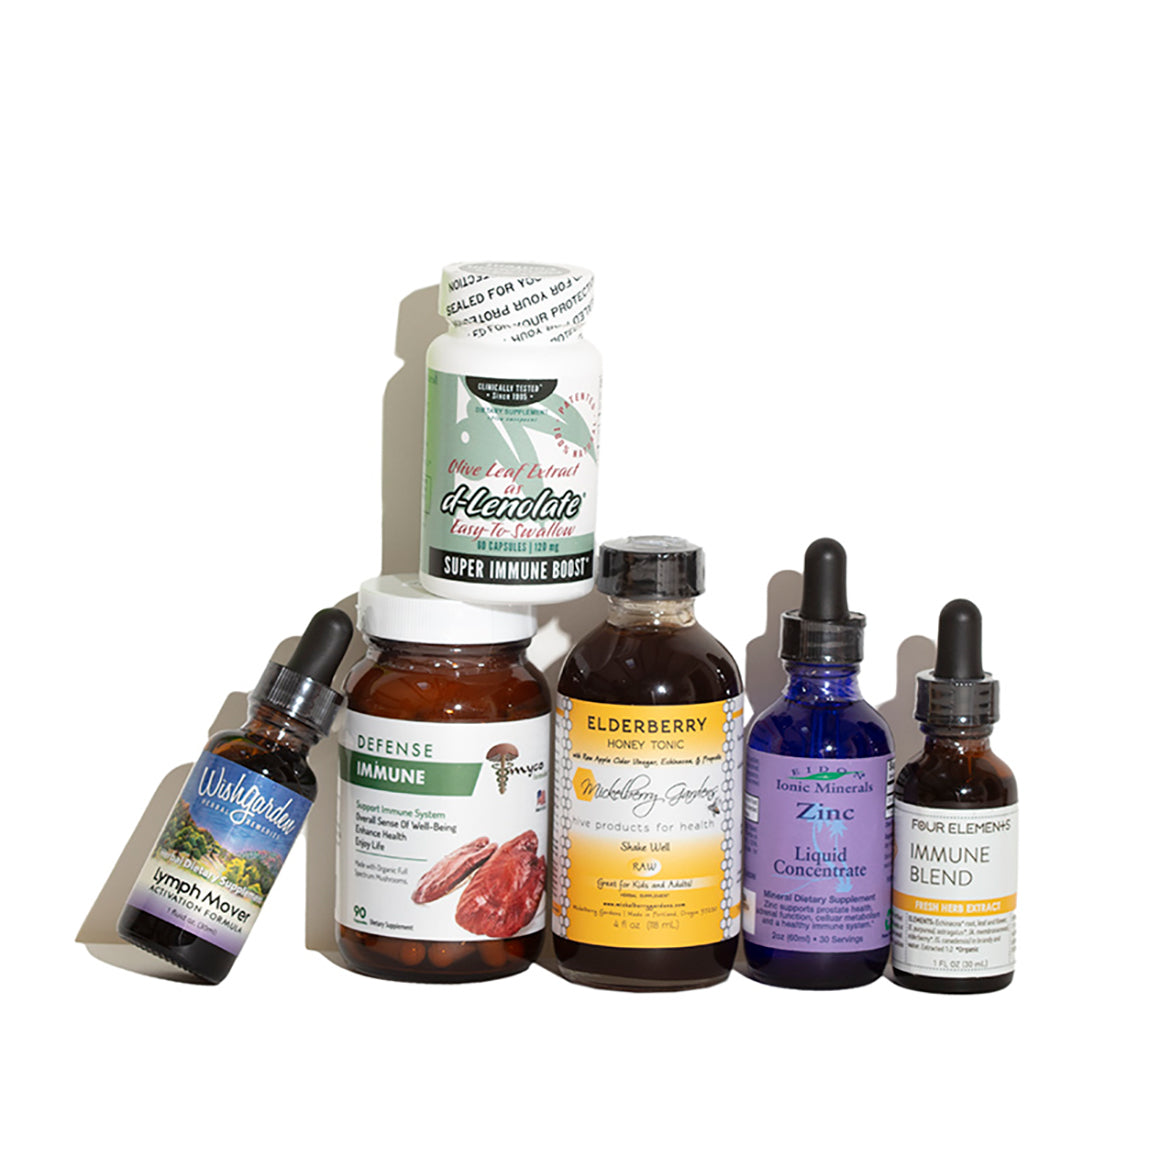 Products included in the Stay Well Kit